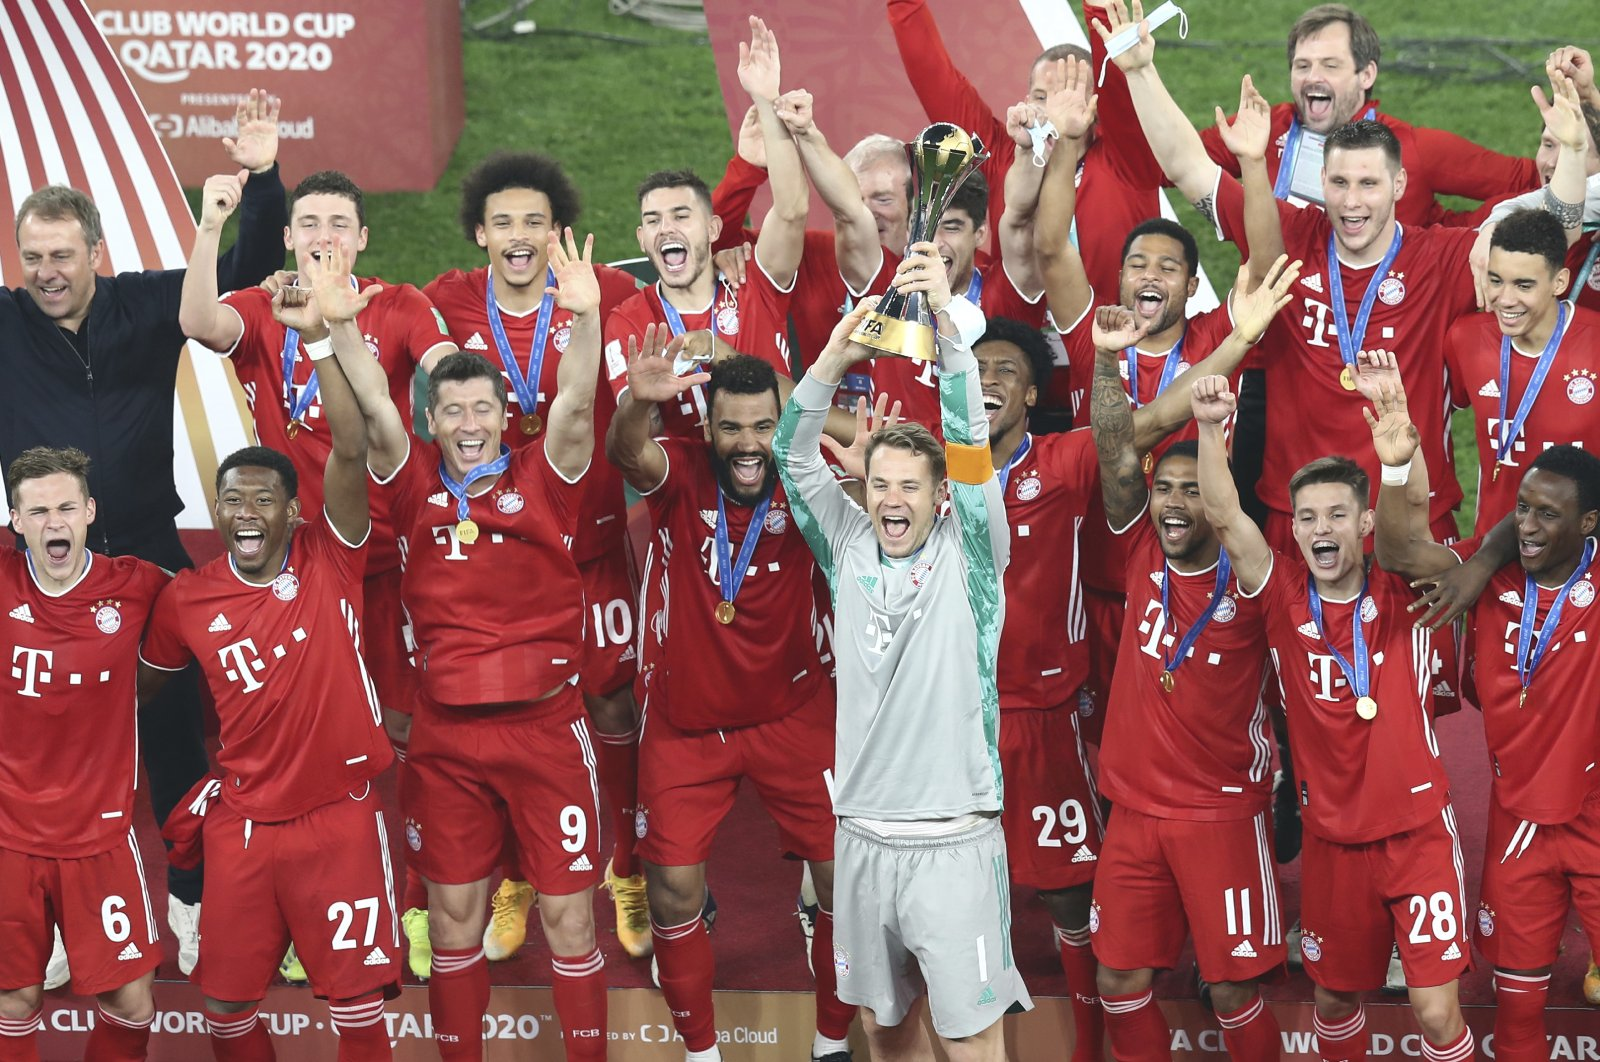 Bayern goalkeeper Manuel Neuer holds up the FIFA Club World Cup trophy after beating Tigres in the final at the Education City stadium, al Rayyan, Qatar, Feb. 11, 2021. (AP Photo)